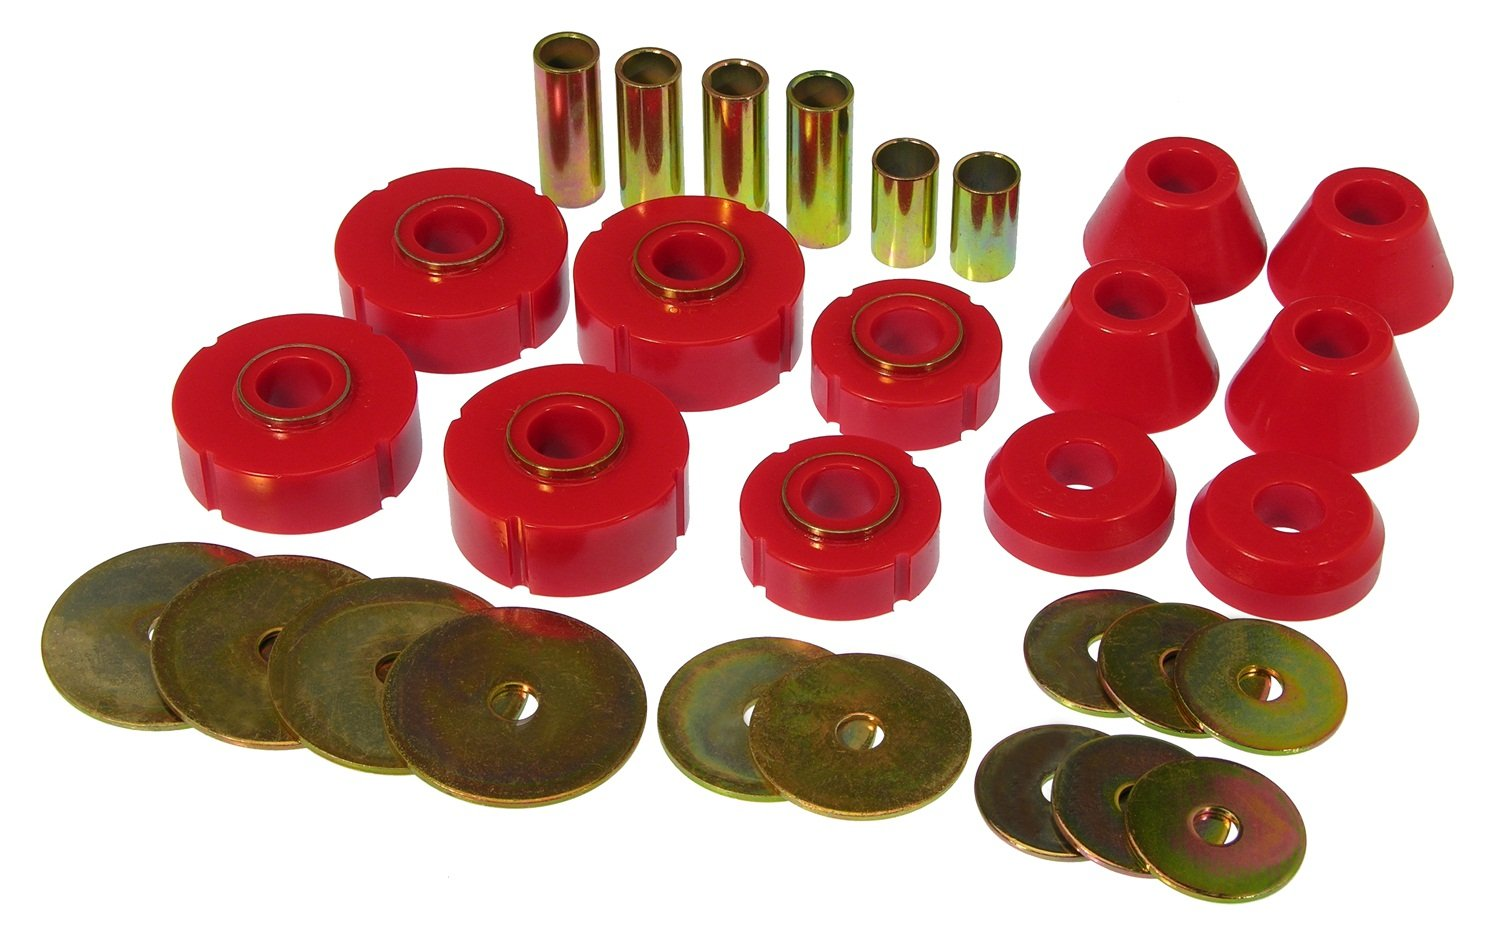 Prothane 7-102 Red Body and Standard Cab Mount Bushing Kit - 12 Piece by Prothane